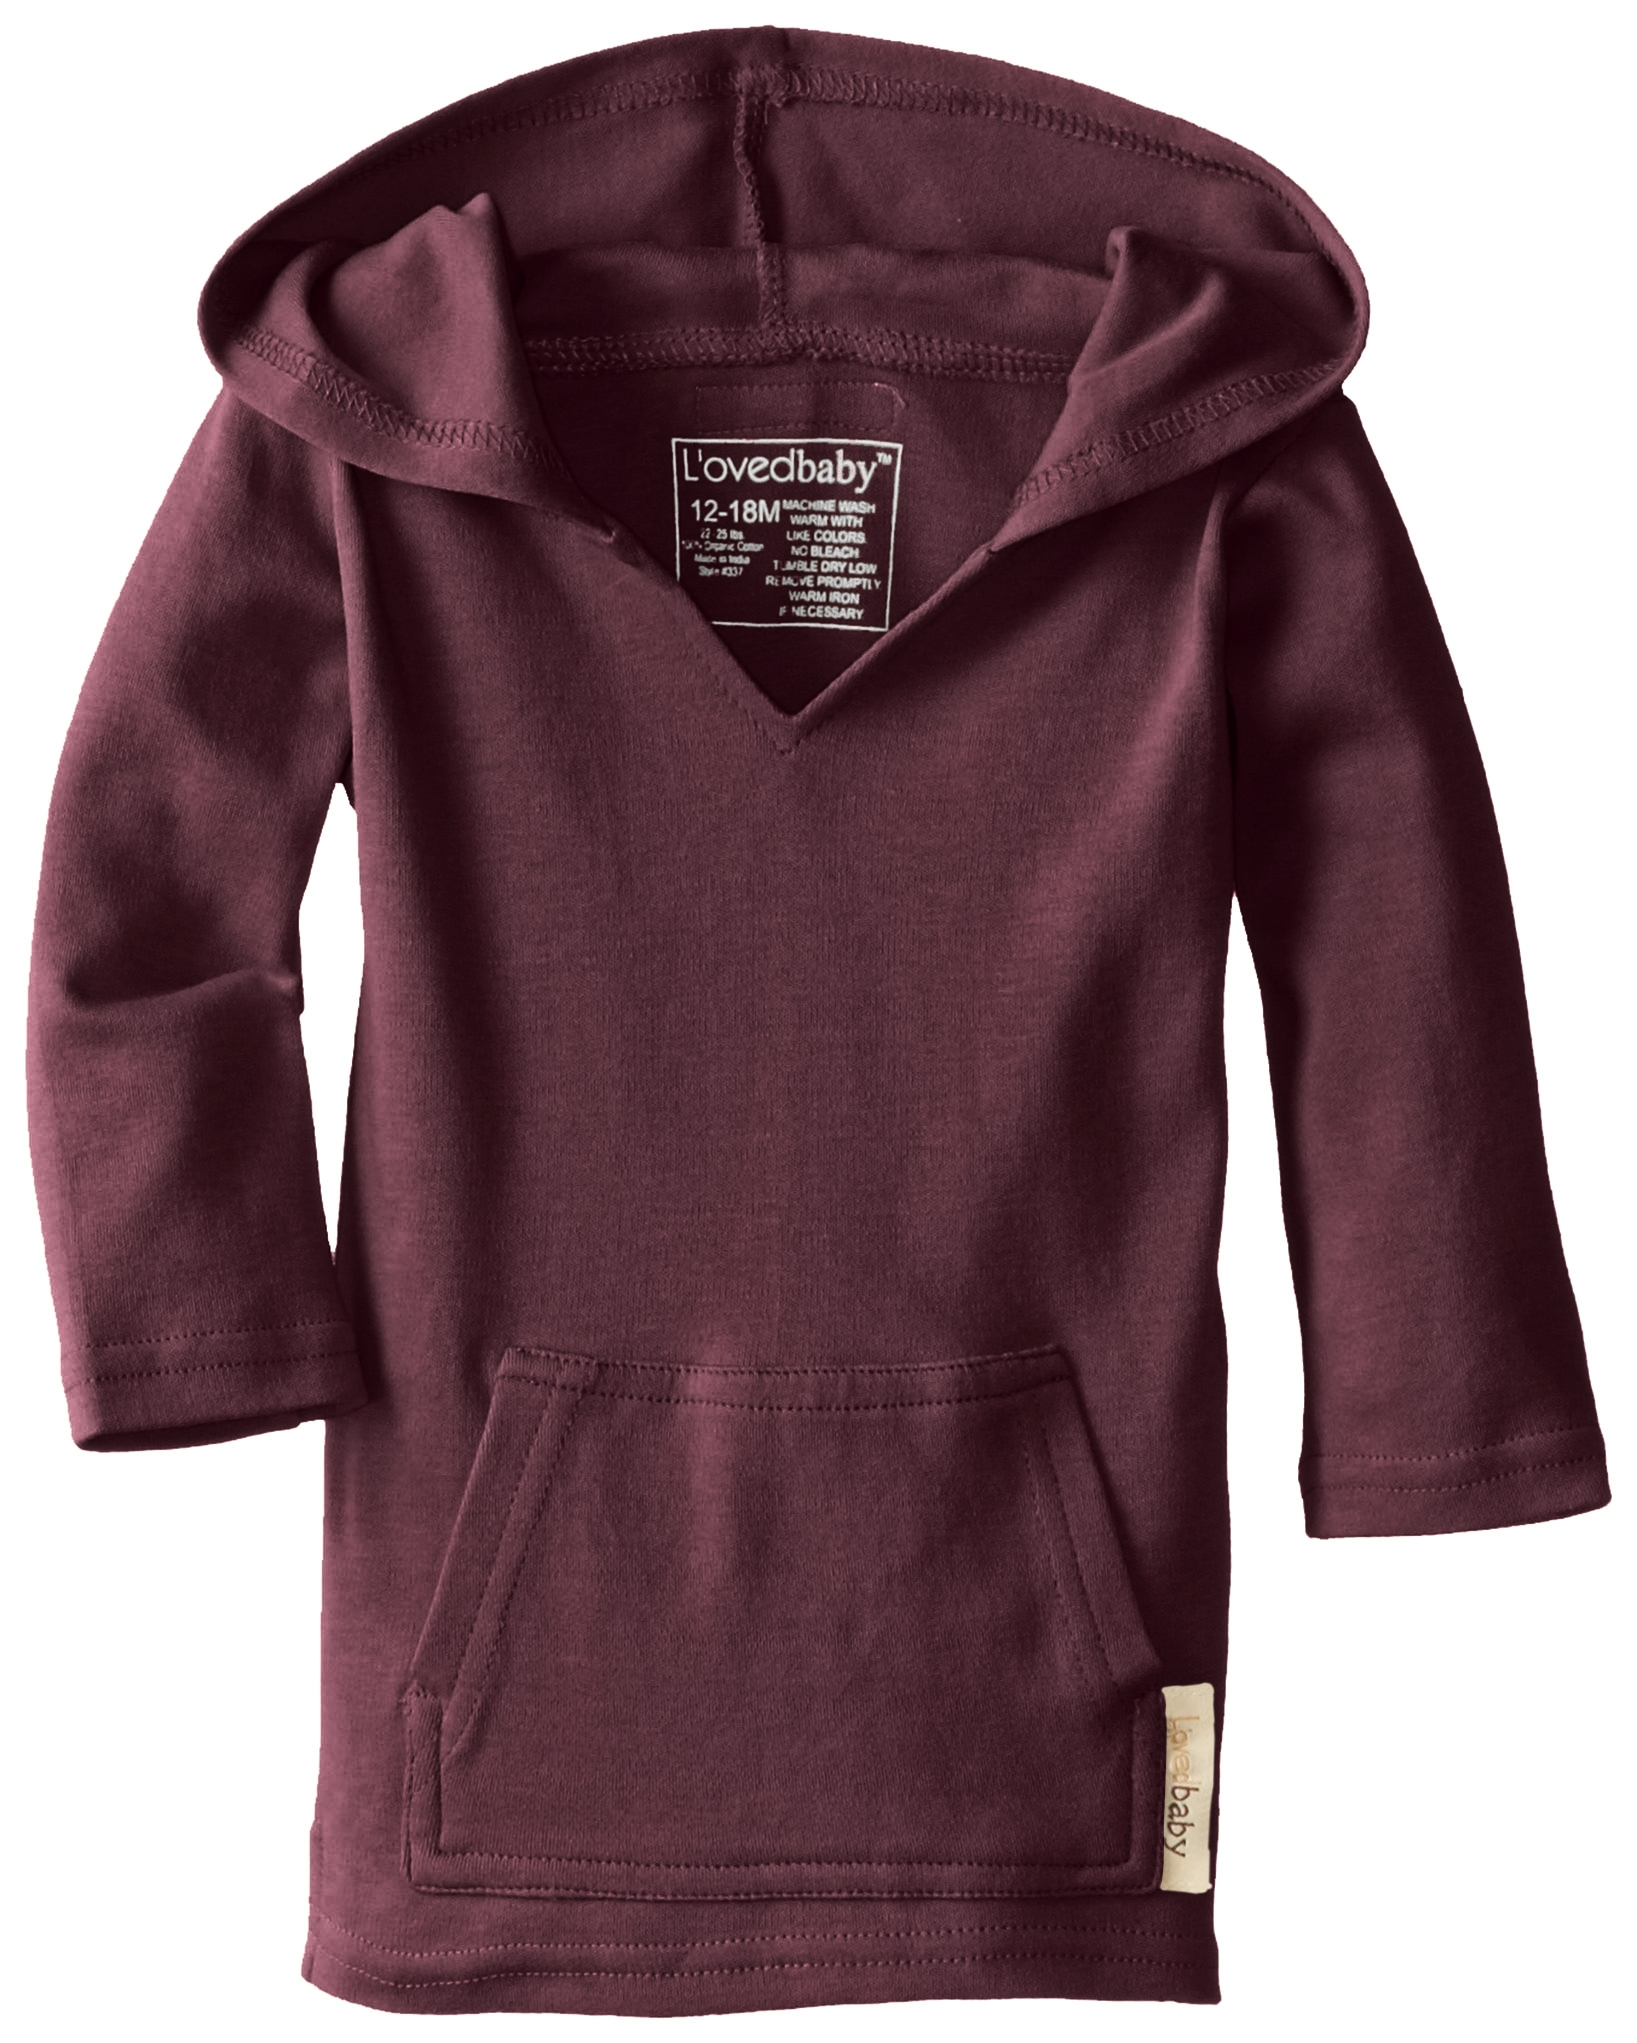 L'ovedbaby Unisex-Baby Newborn Organic Hoodie, Eggplant, 12/18 Months by L'ovedbaby (Image #1)